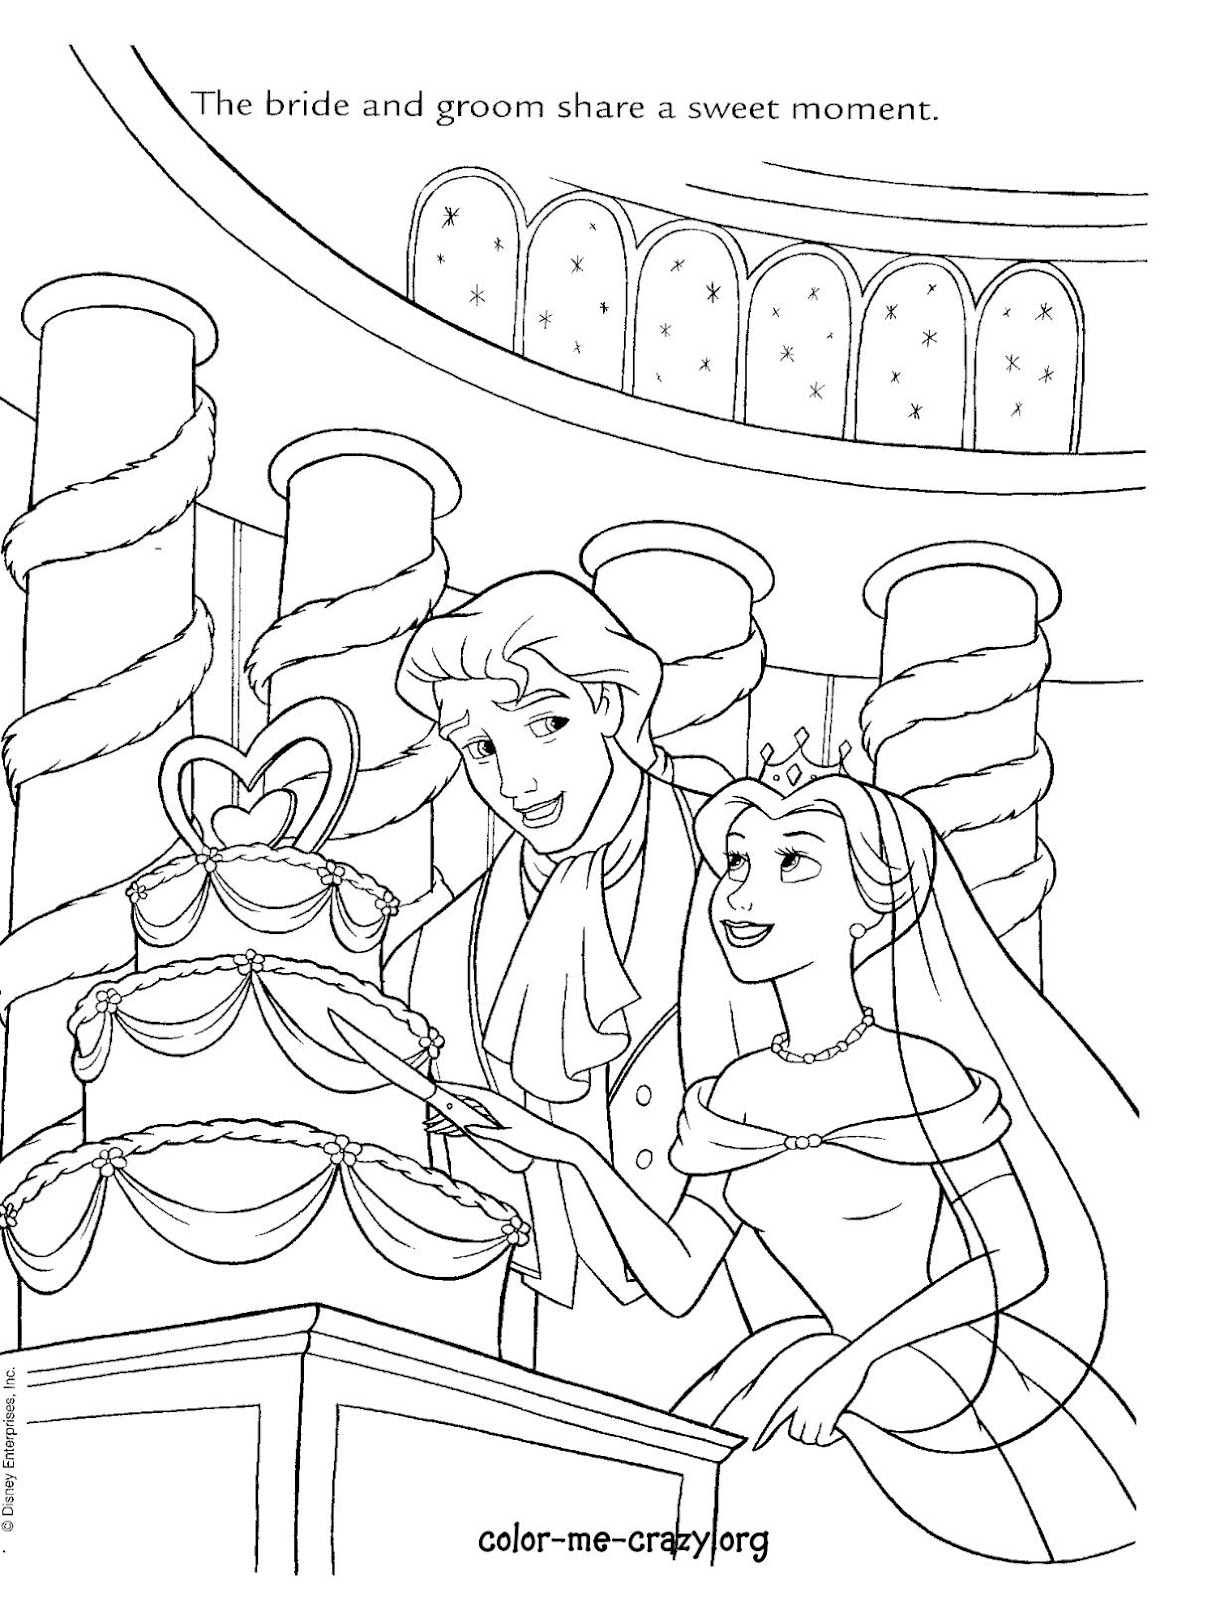 disney wedding coloring pages - photo#6